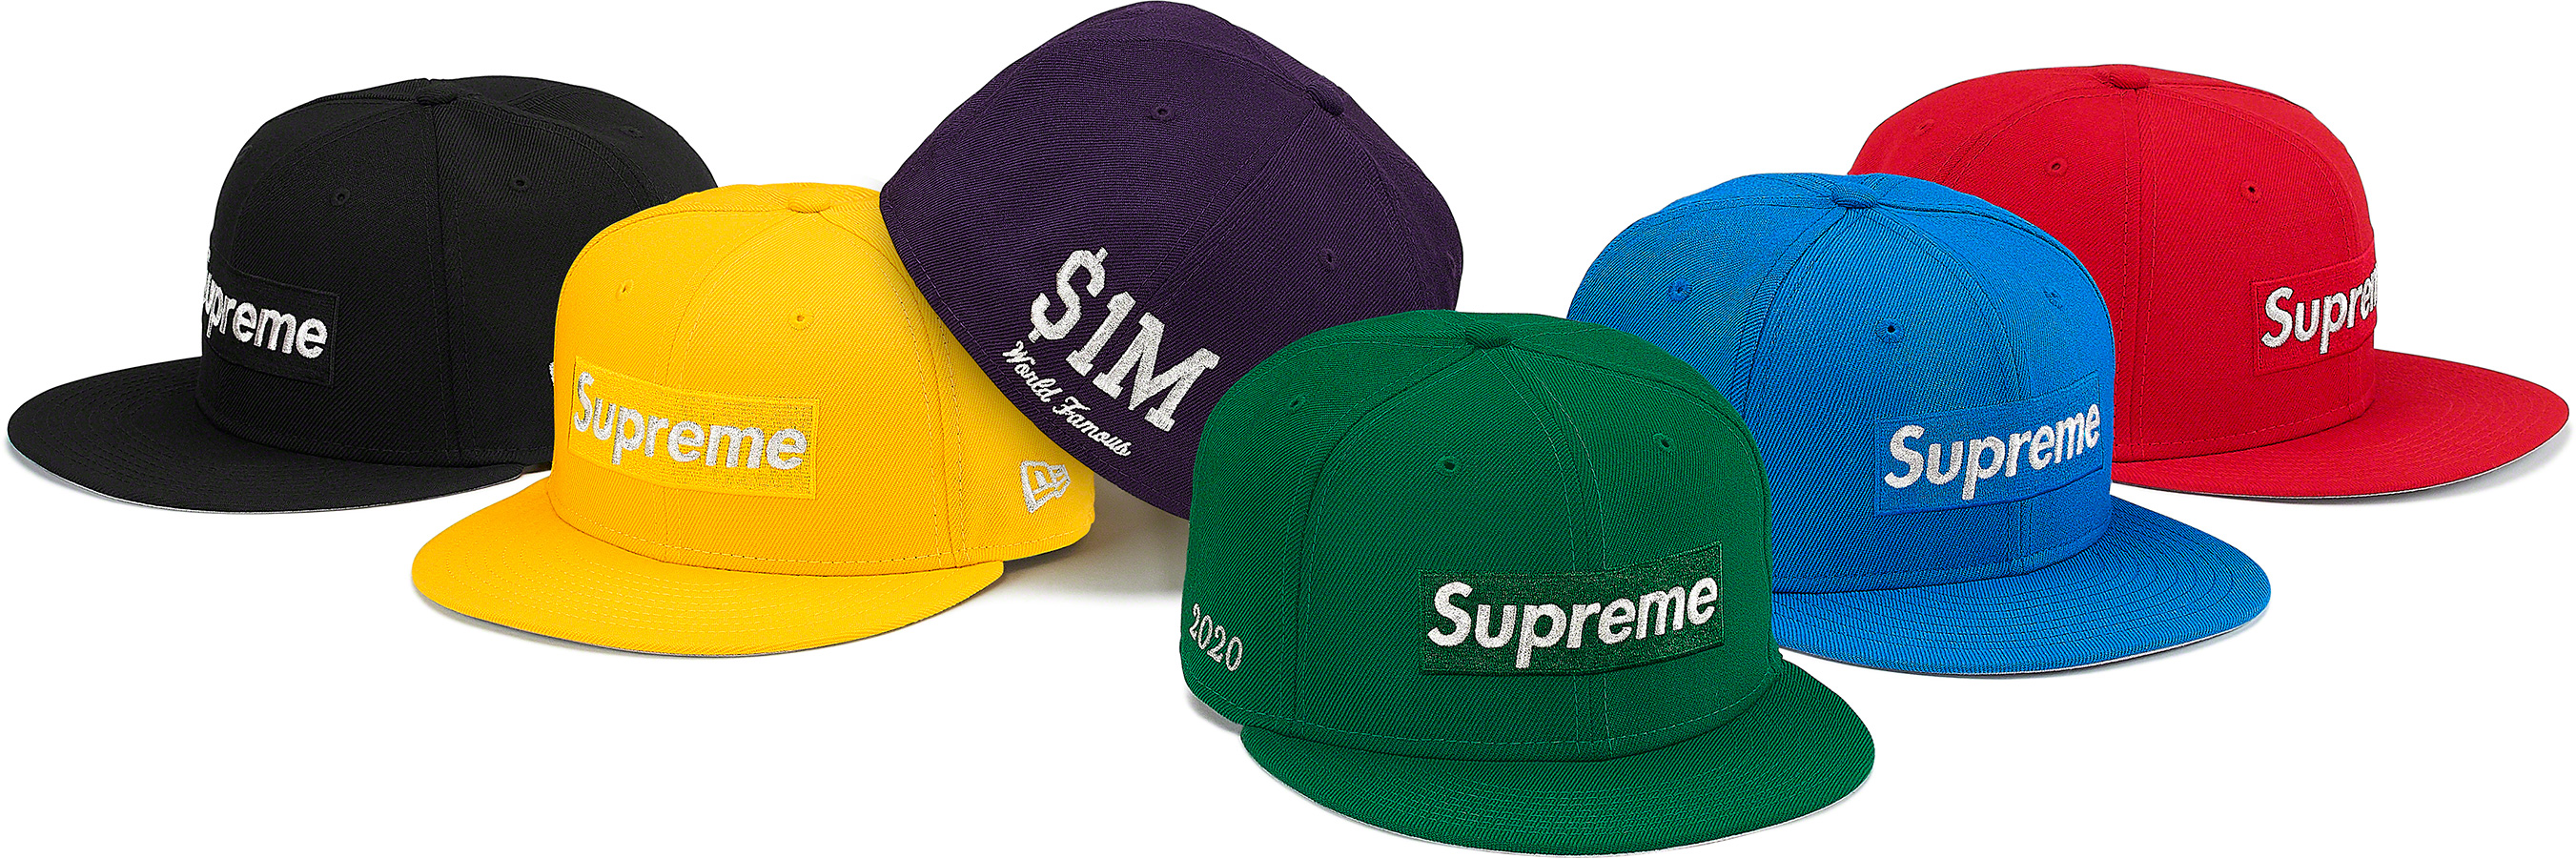 supreme-20ss-spring-summer-1m-metallic-box-logo-new-era